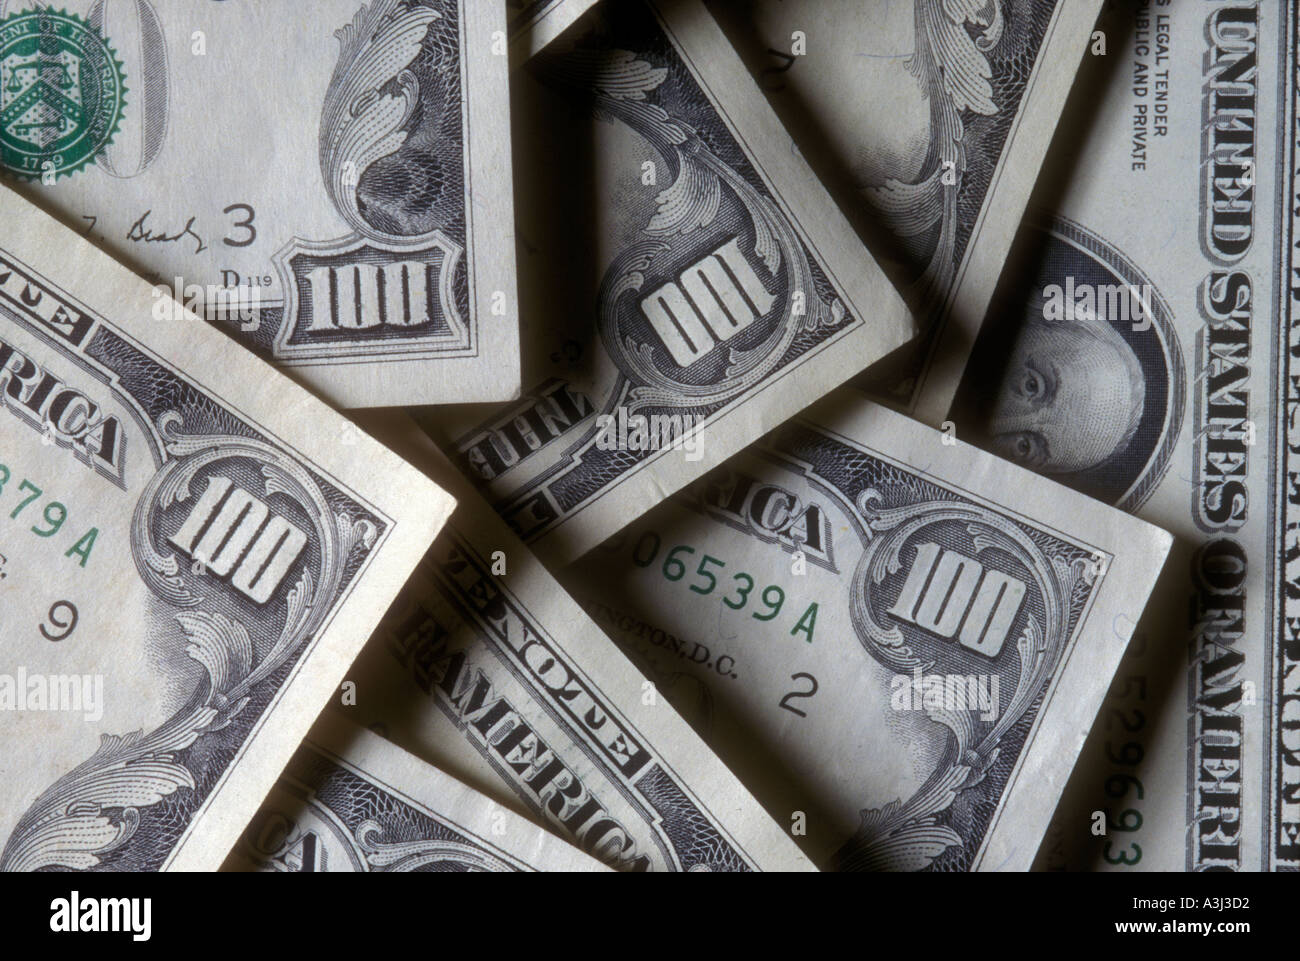 several 100 dollar bills US money - Stock Image